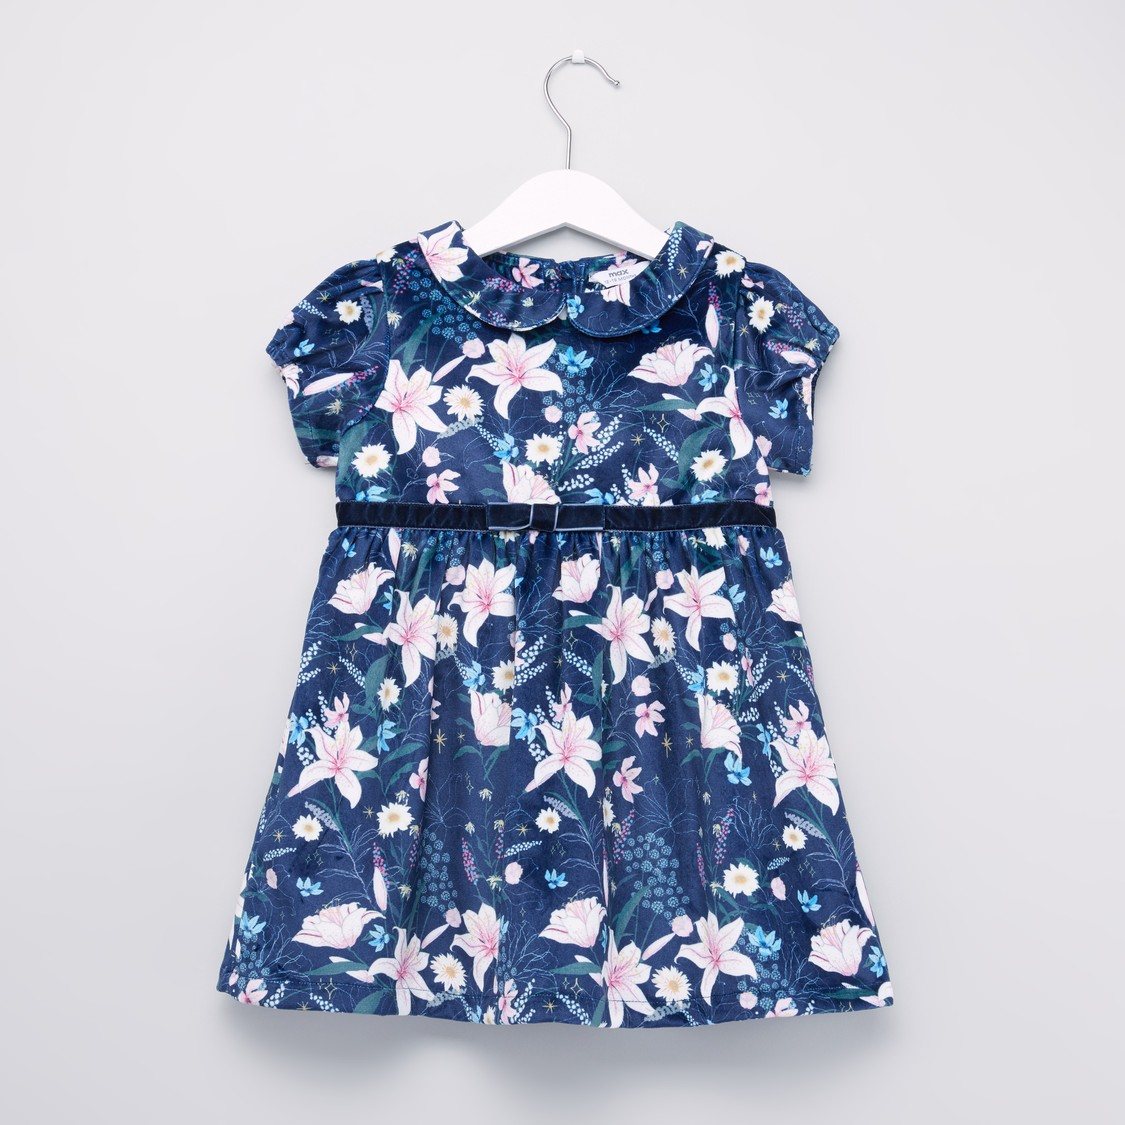 Floral Printed Dress with Short Sleeves and Bow Applique